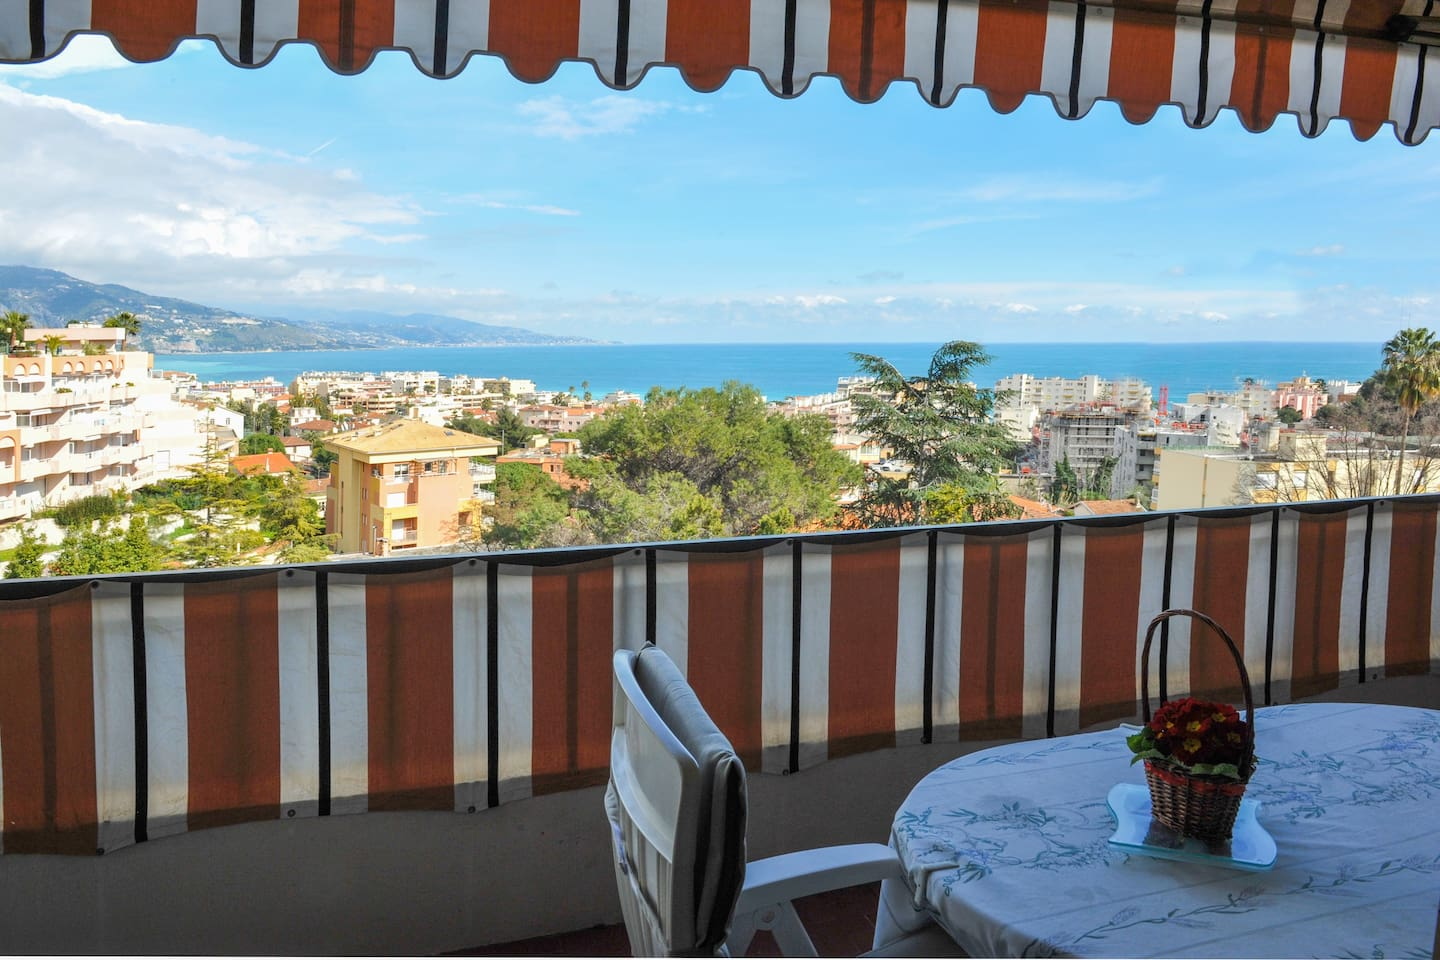 view of the bay of Roquebrune-Carnoles and Italy-vue sur la baie de Roquebrune-Carnoles & Italie